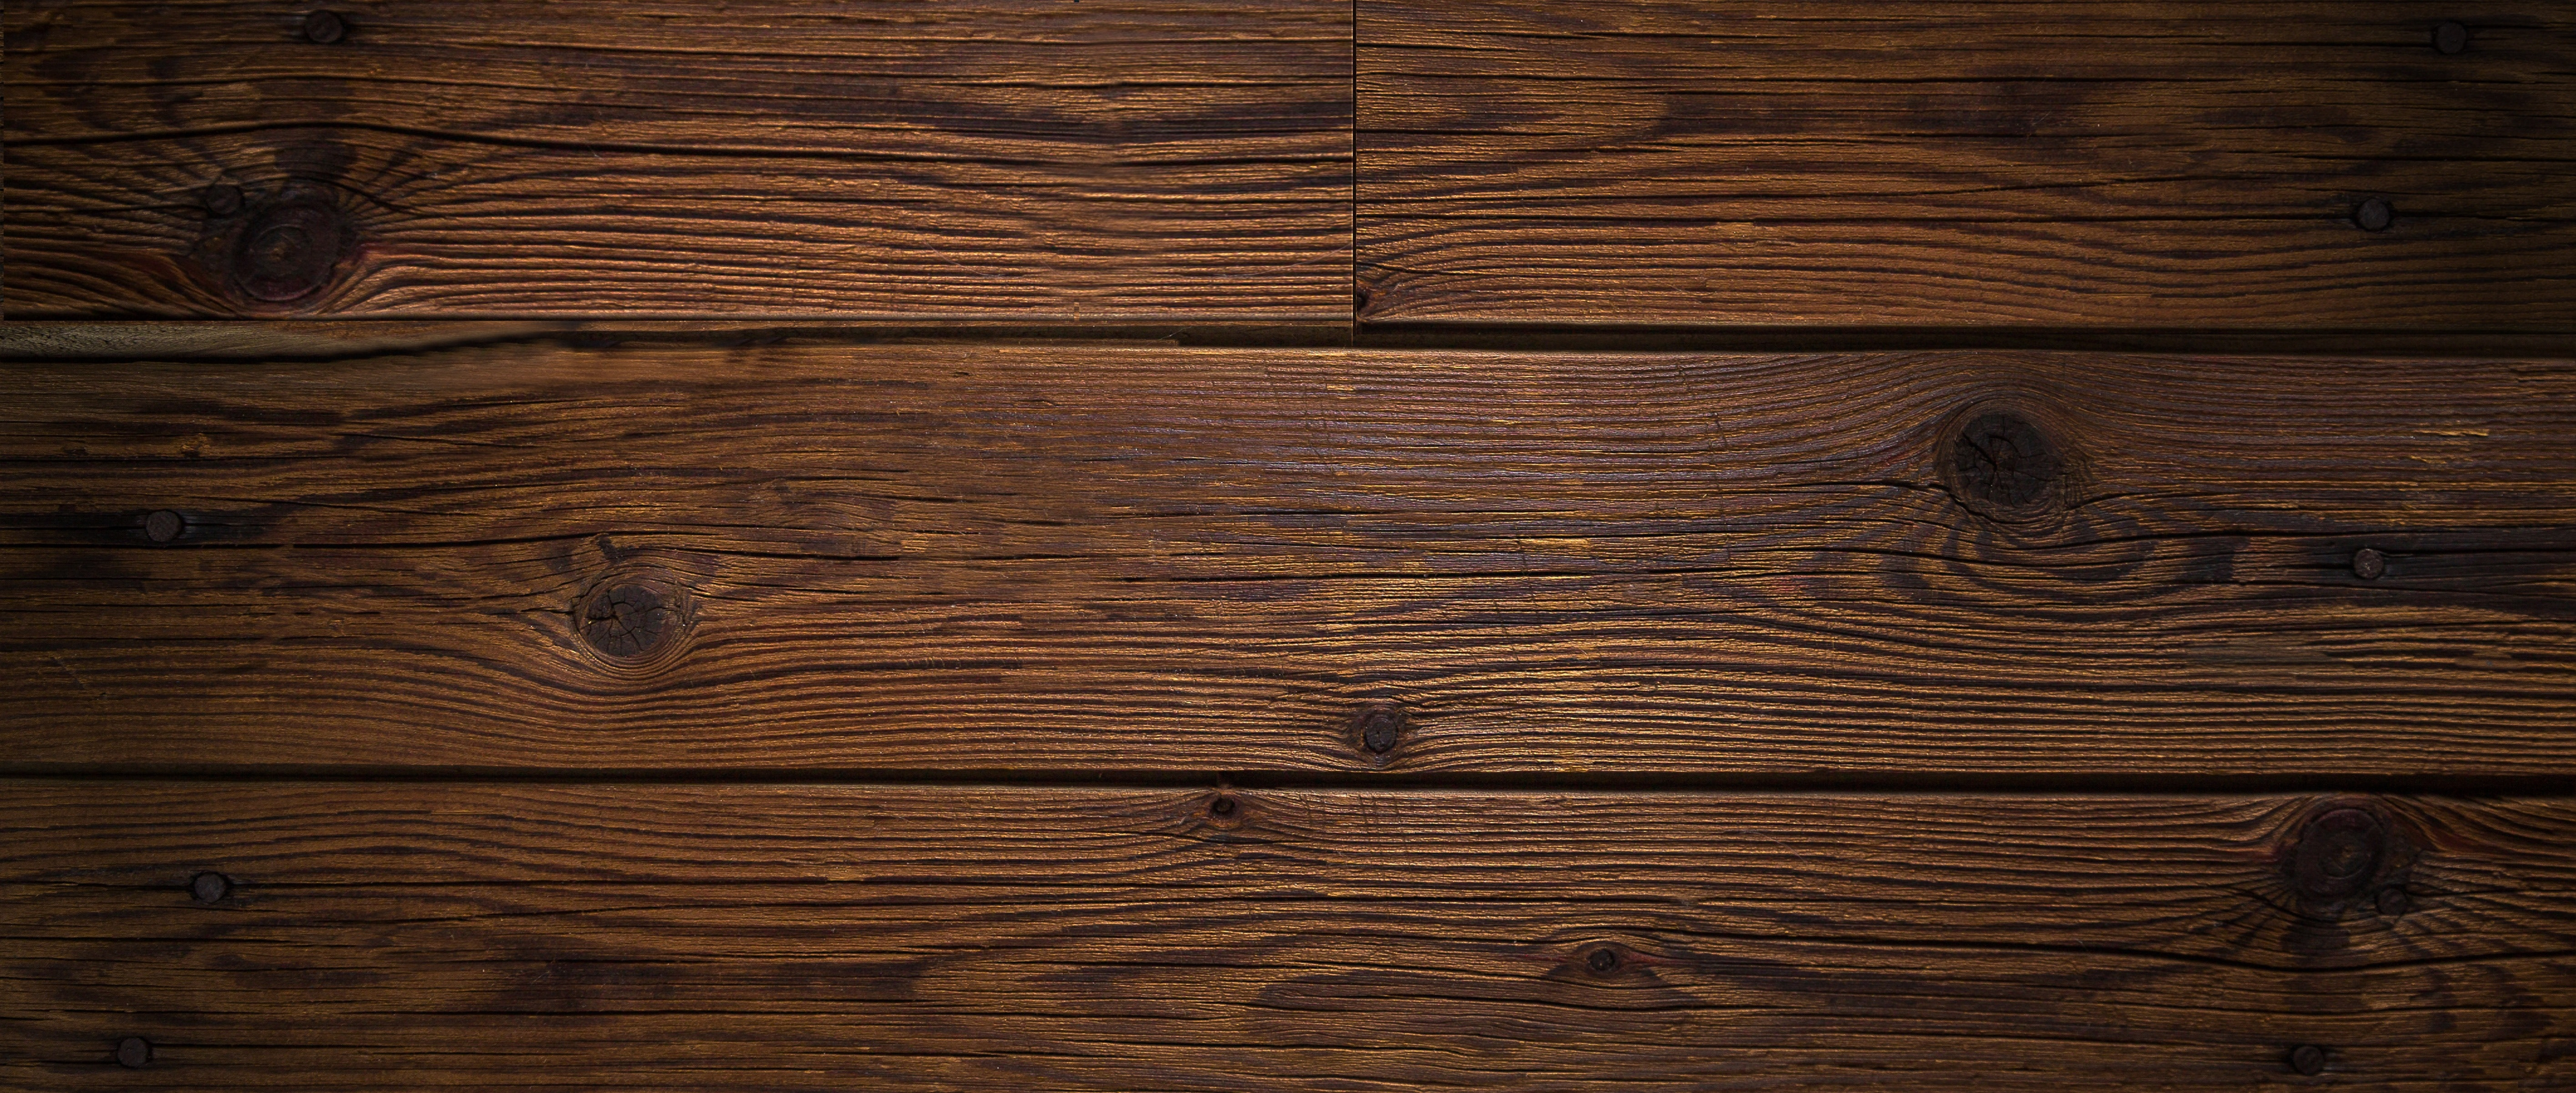 1000 Engaging Wood Background Photos 183 Pexels 183 Free